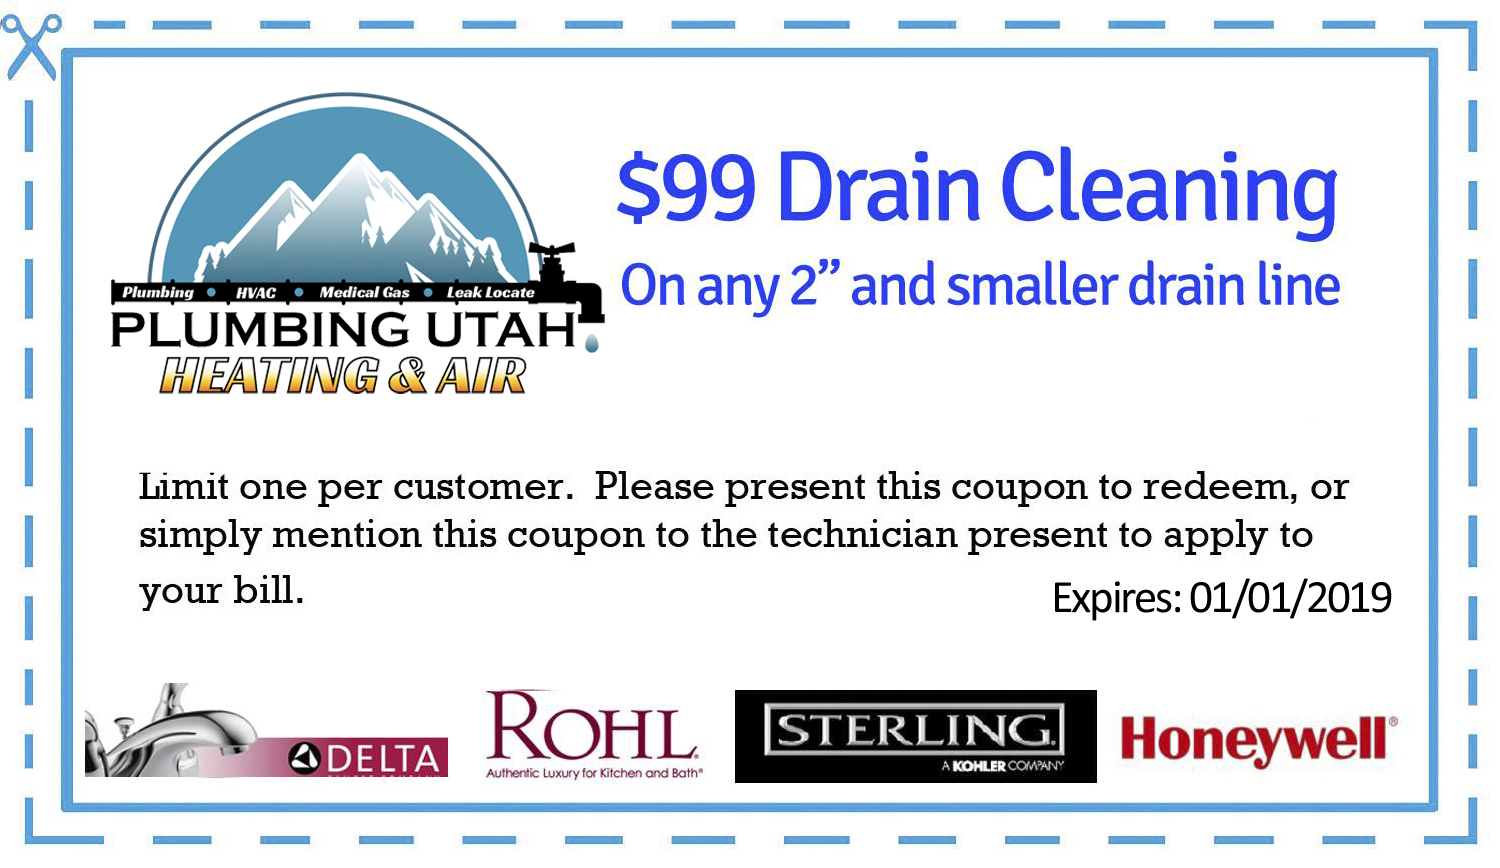 plumbing-utah-heating-air-plumbing-coupon-2